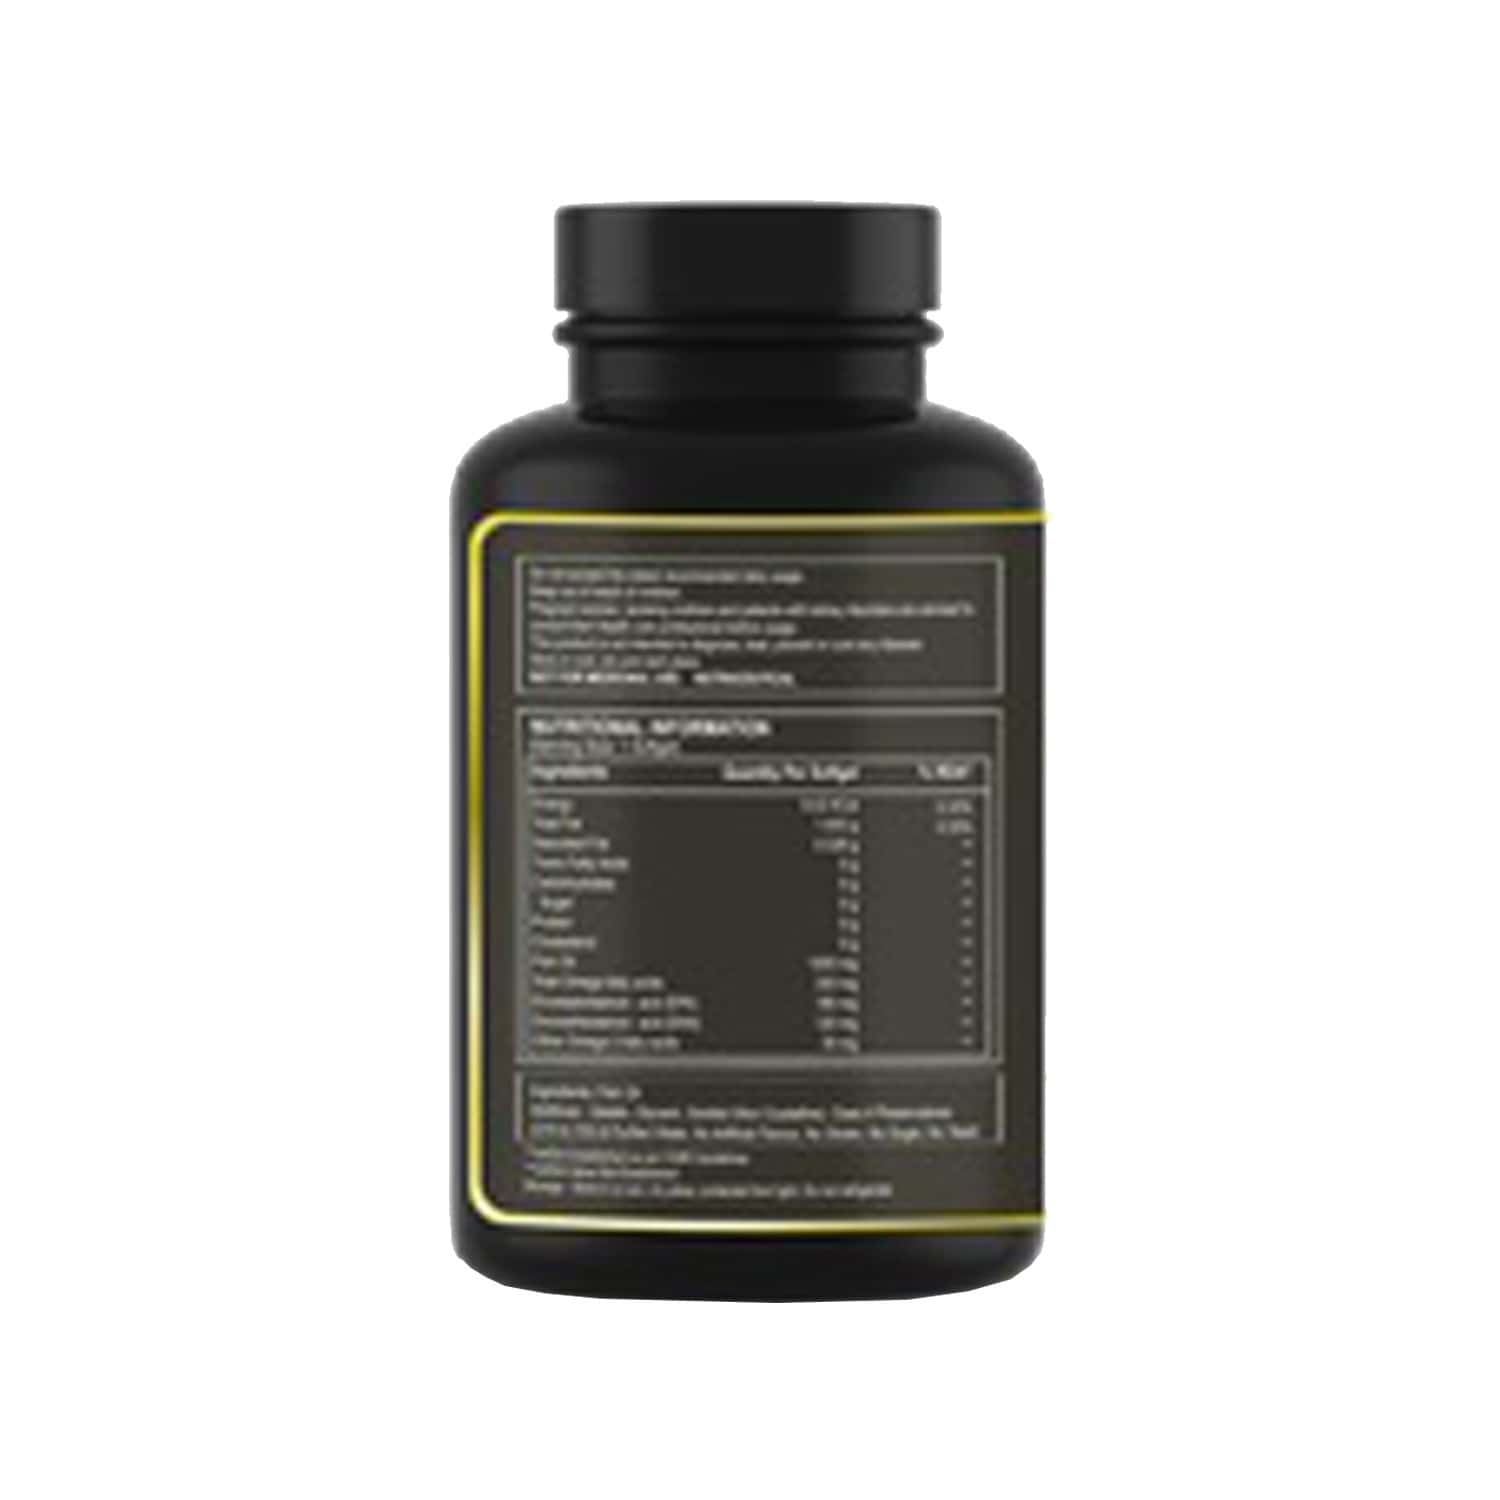 Pure Nutrition Omega 3 Fish Oil With Epa And Dha For Brain - Heart And Eye Health - 60 Softgel Capsules